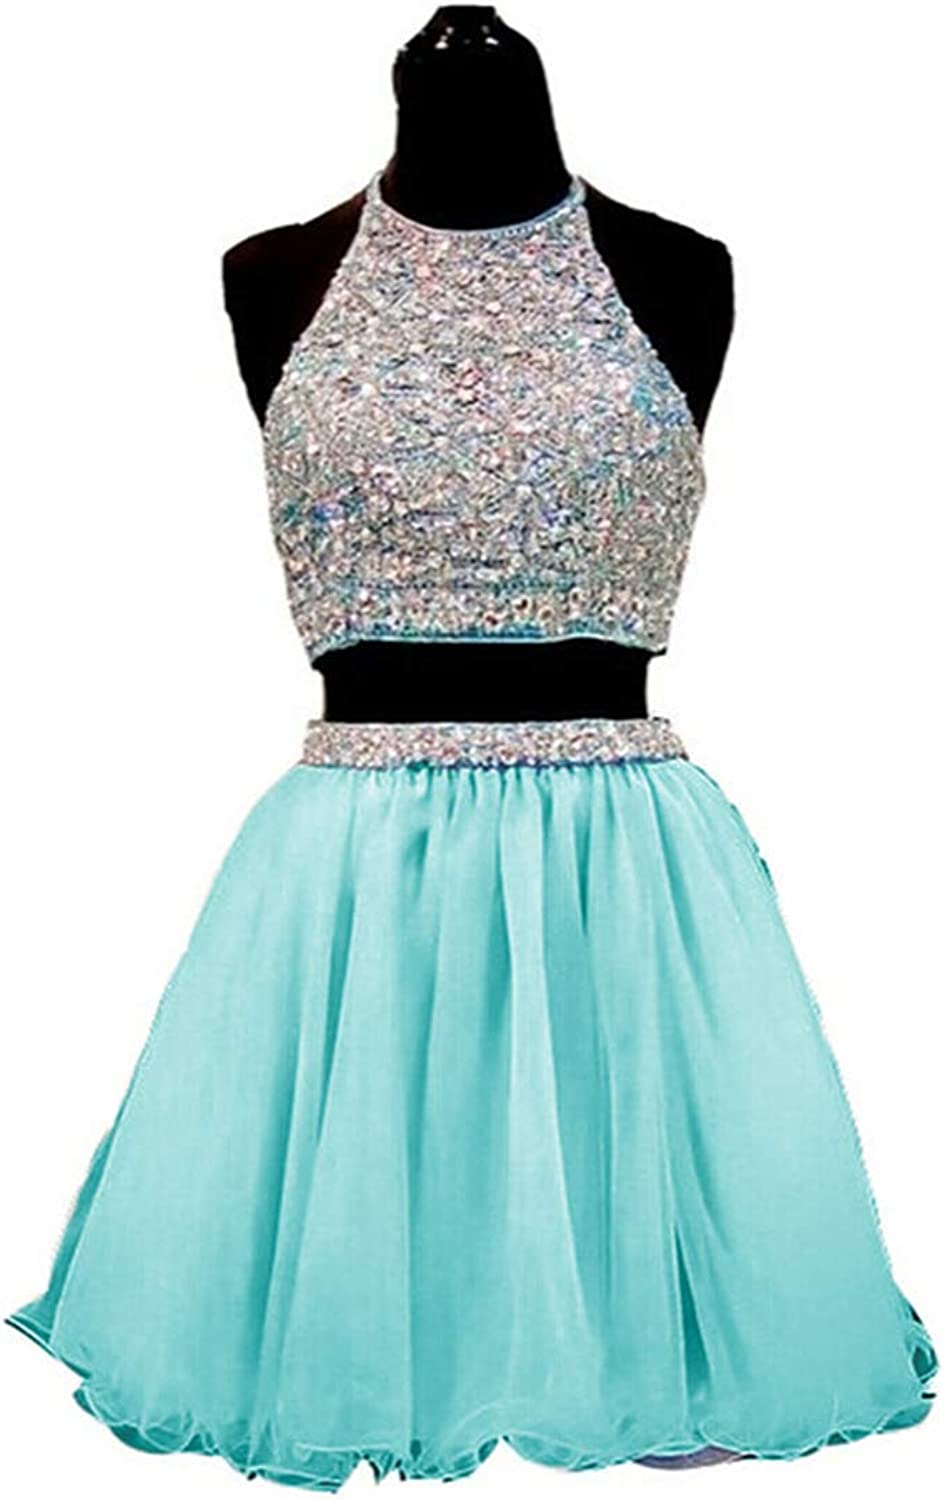 Fanciest Women's Crystal Short Homecoming Dresses 2016 Junior Two Piece Gowns